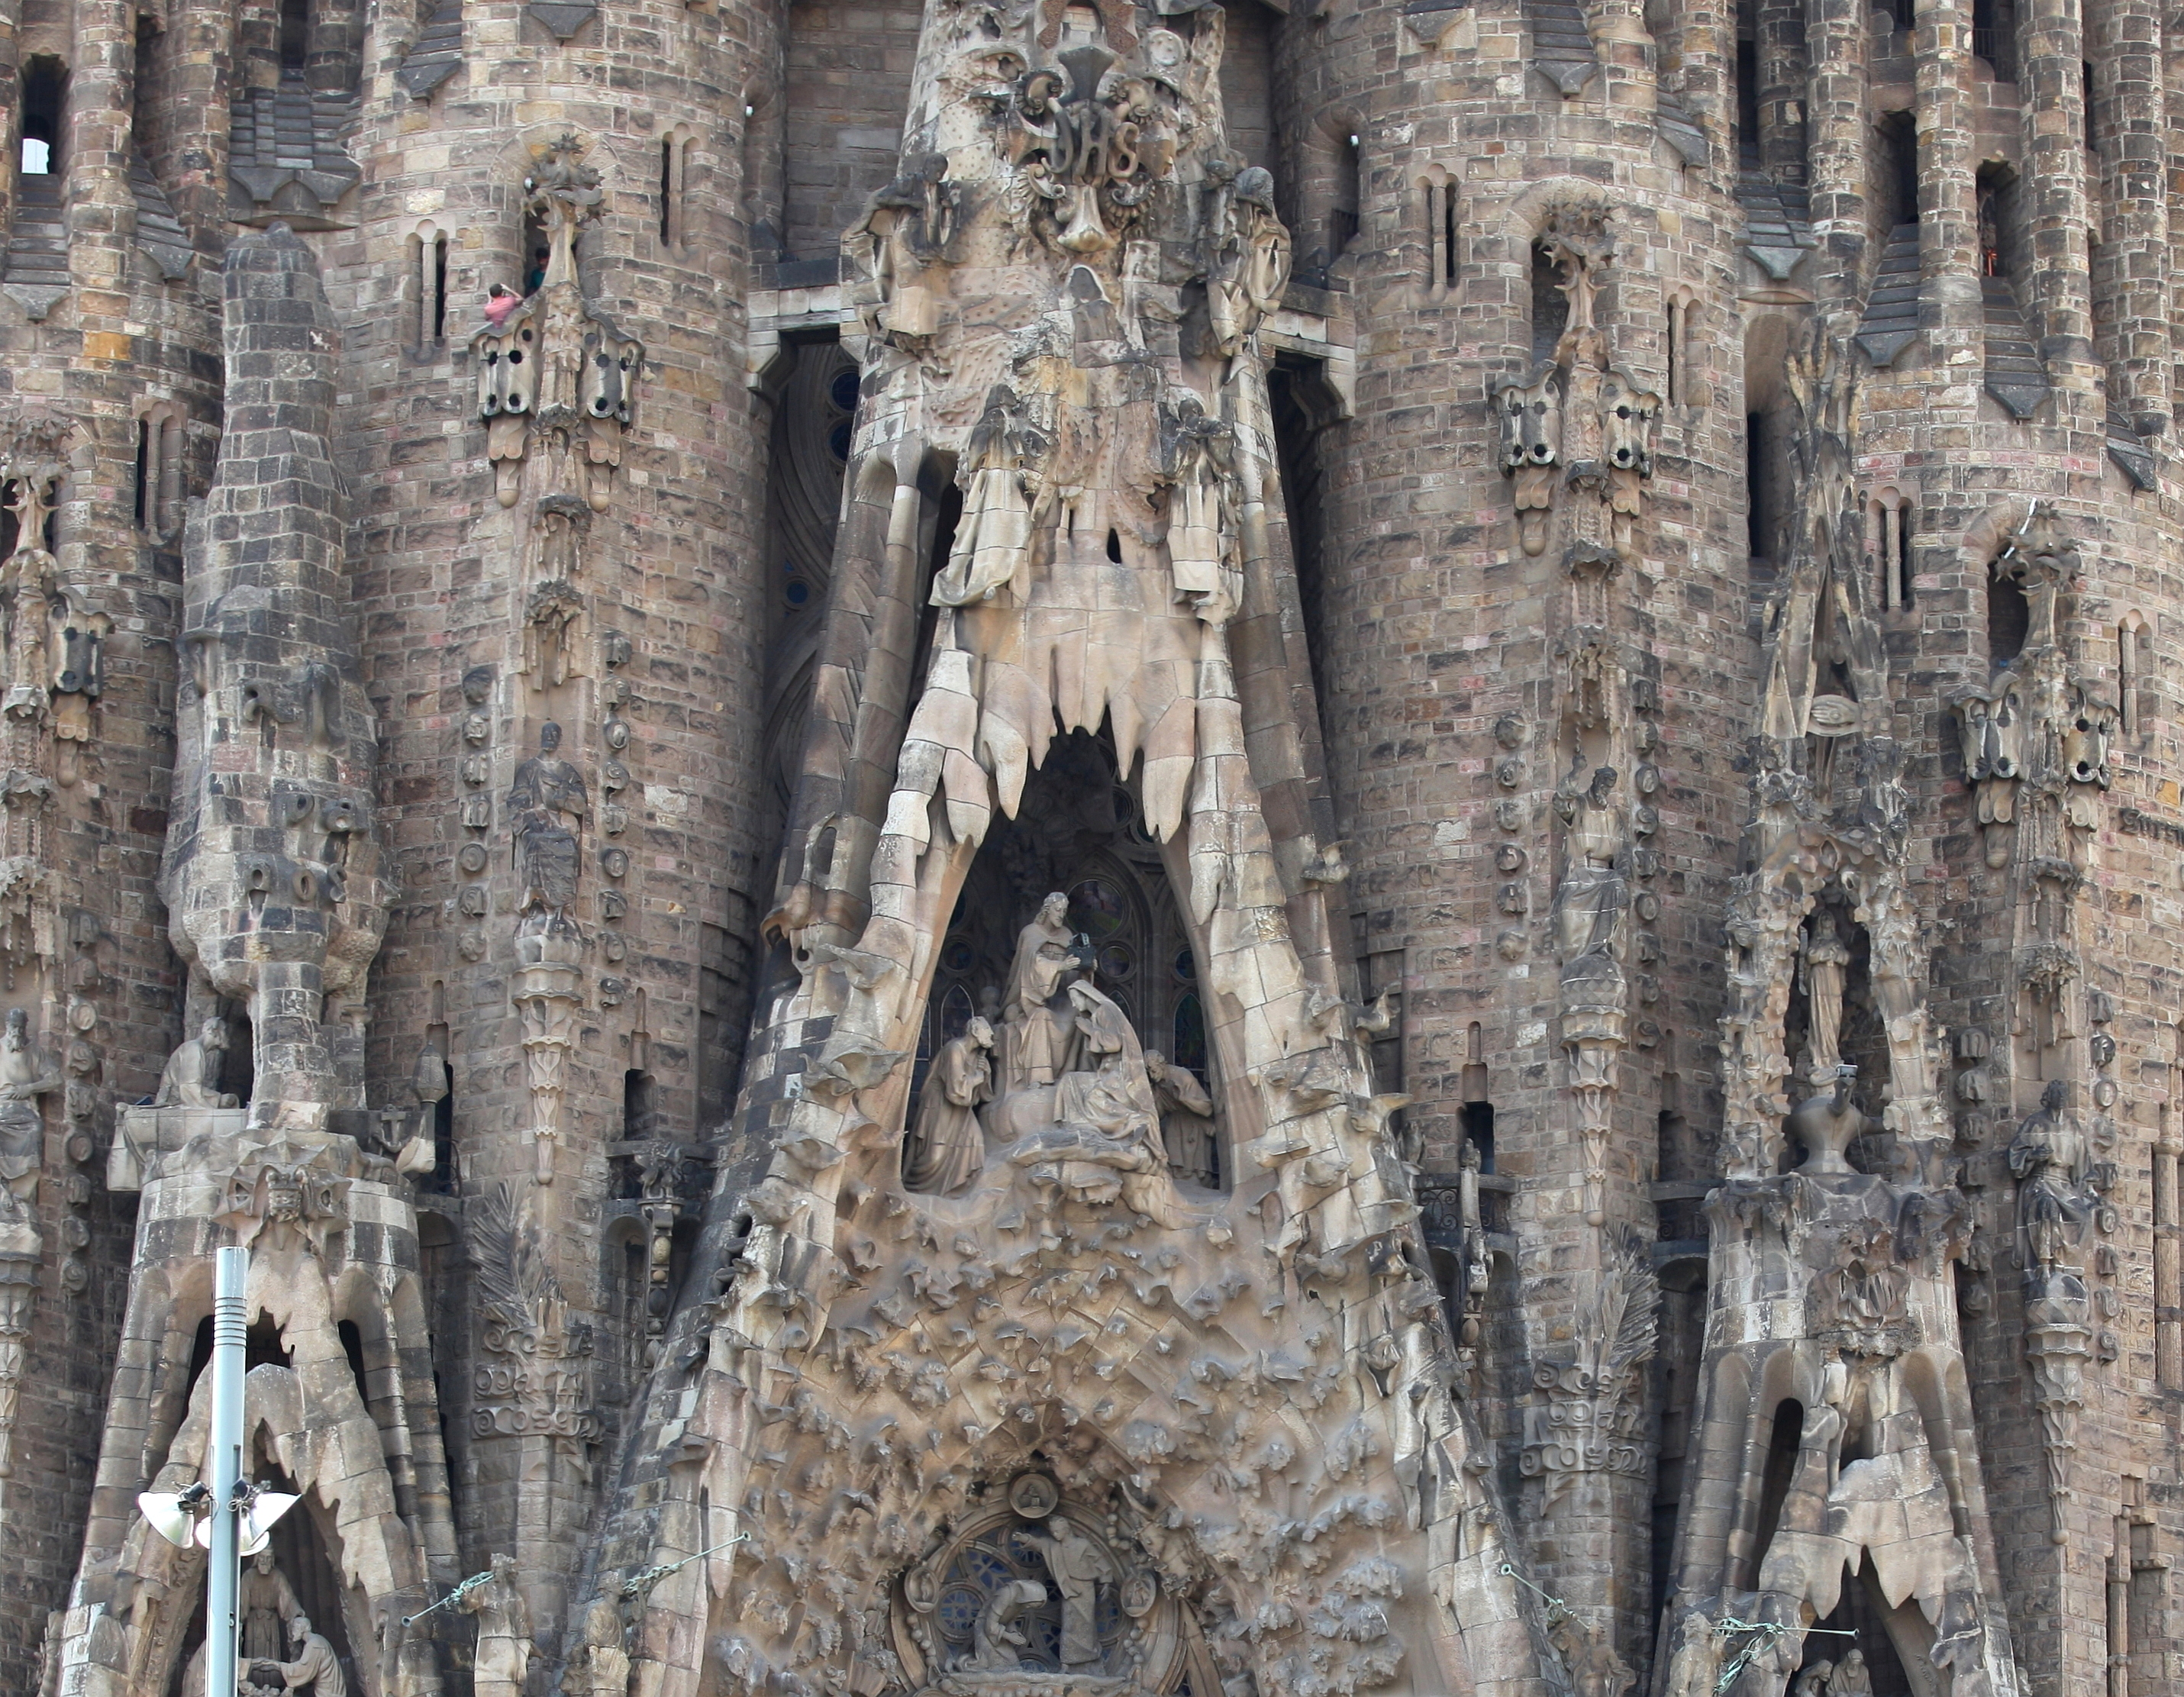 Sagrada Familia church, Barcelona, Spain, Europe, August 2013, picture 56